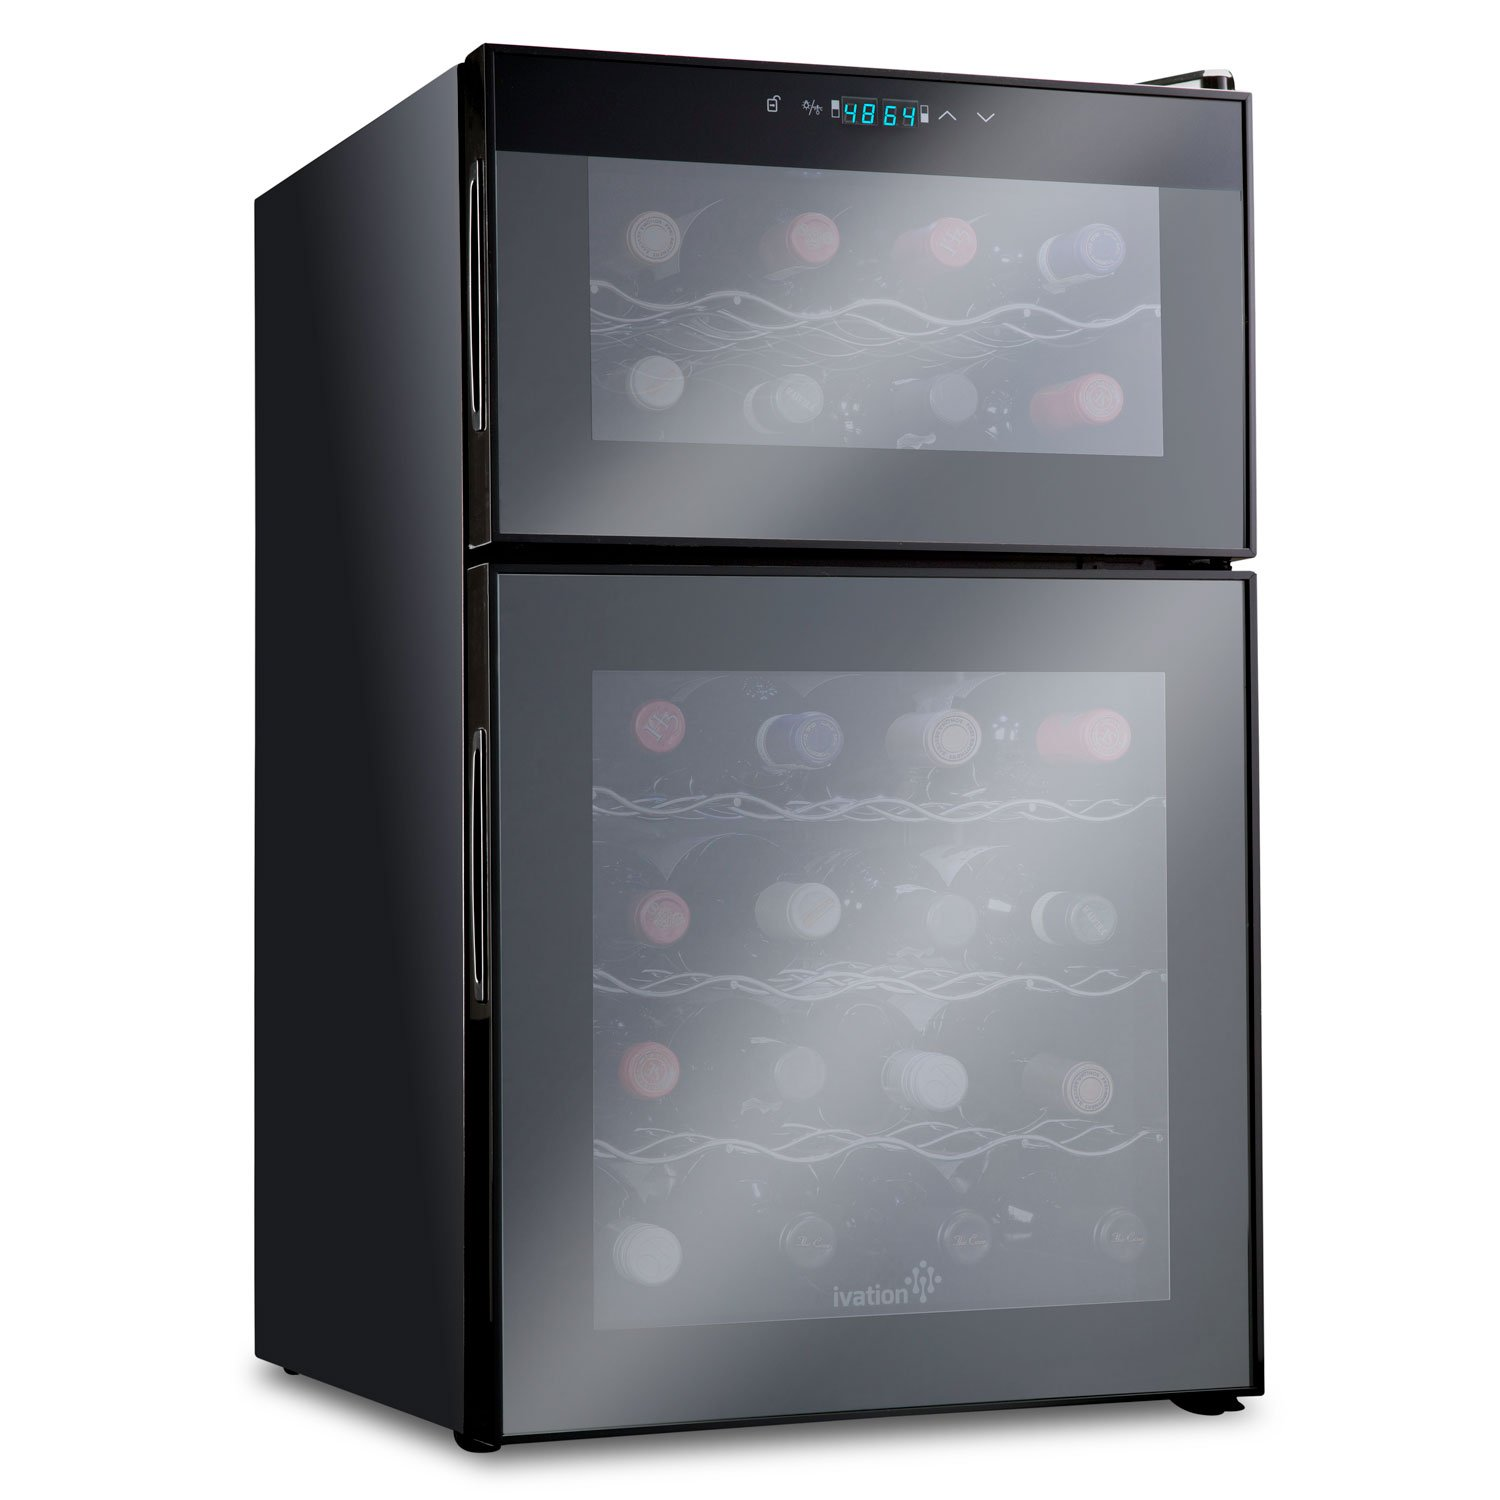 Ivation Thermoelectric Temperature Freestanding Refrigerator